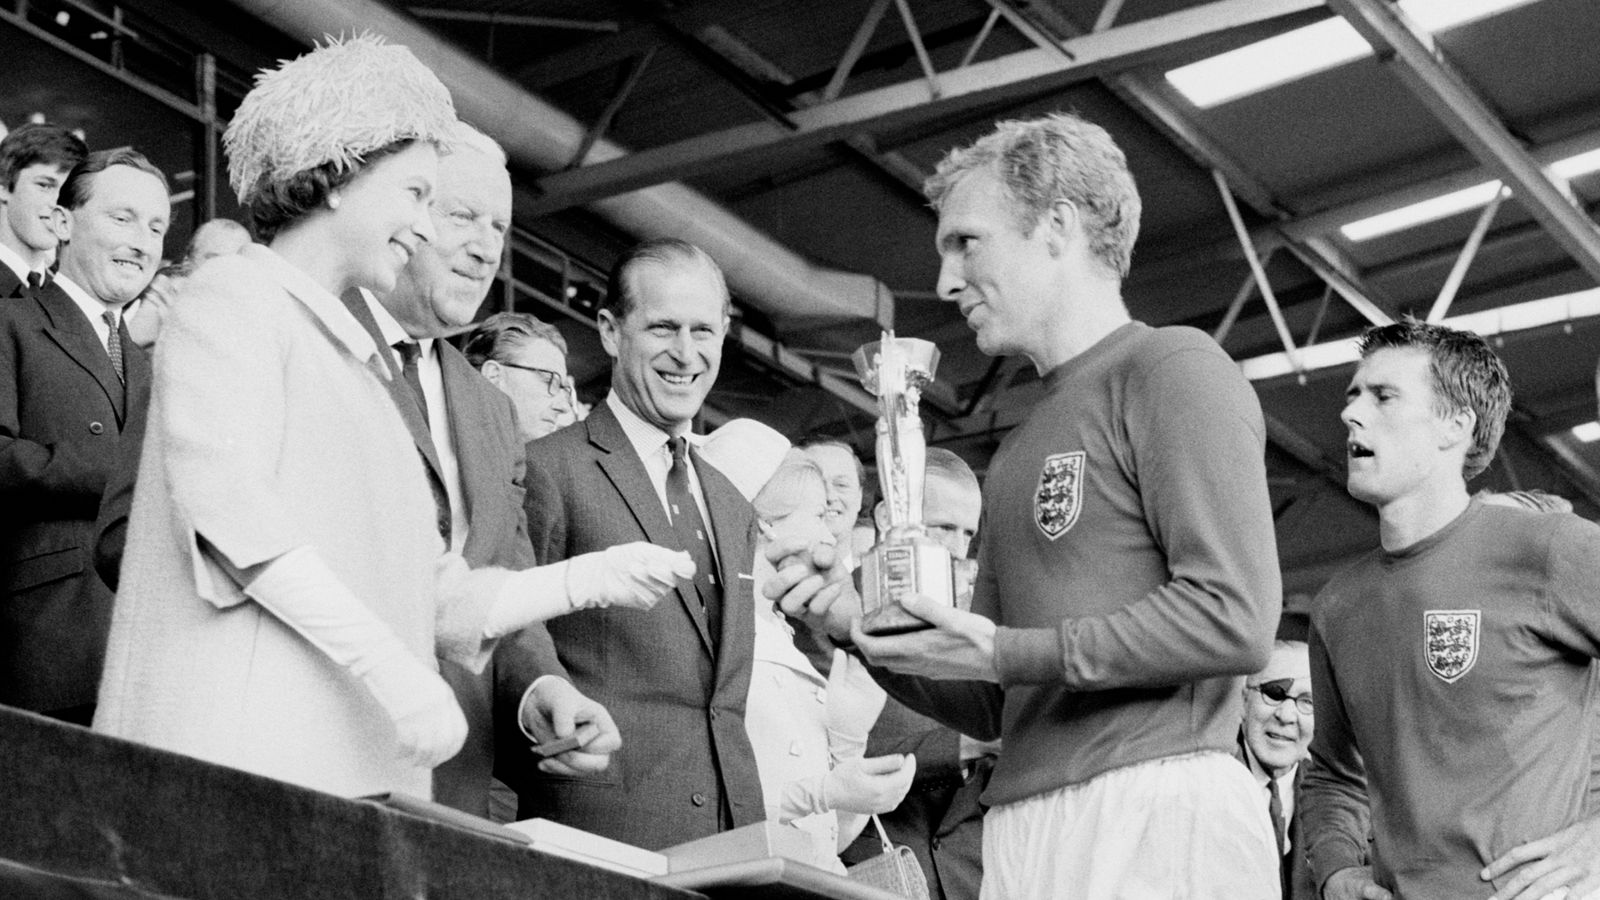 Euro 2020: Queen sends message to Southgate and England team before final – and recalls memories of 1966 World Cup win